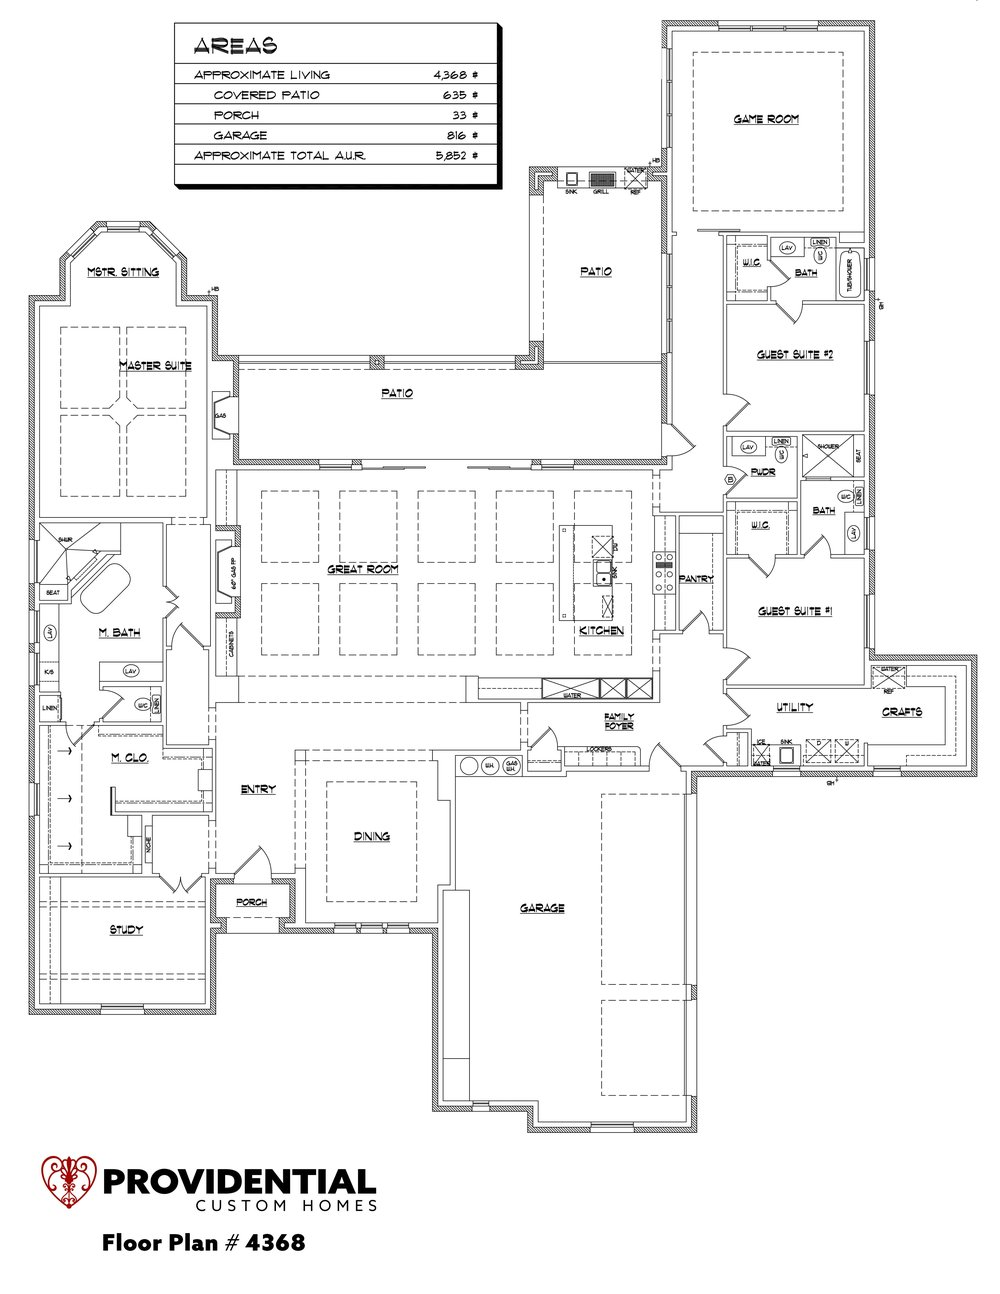 The FLOOR PLAN #4368.jpg